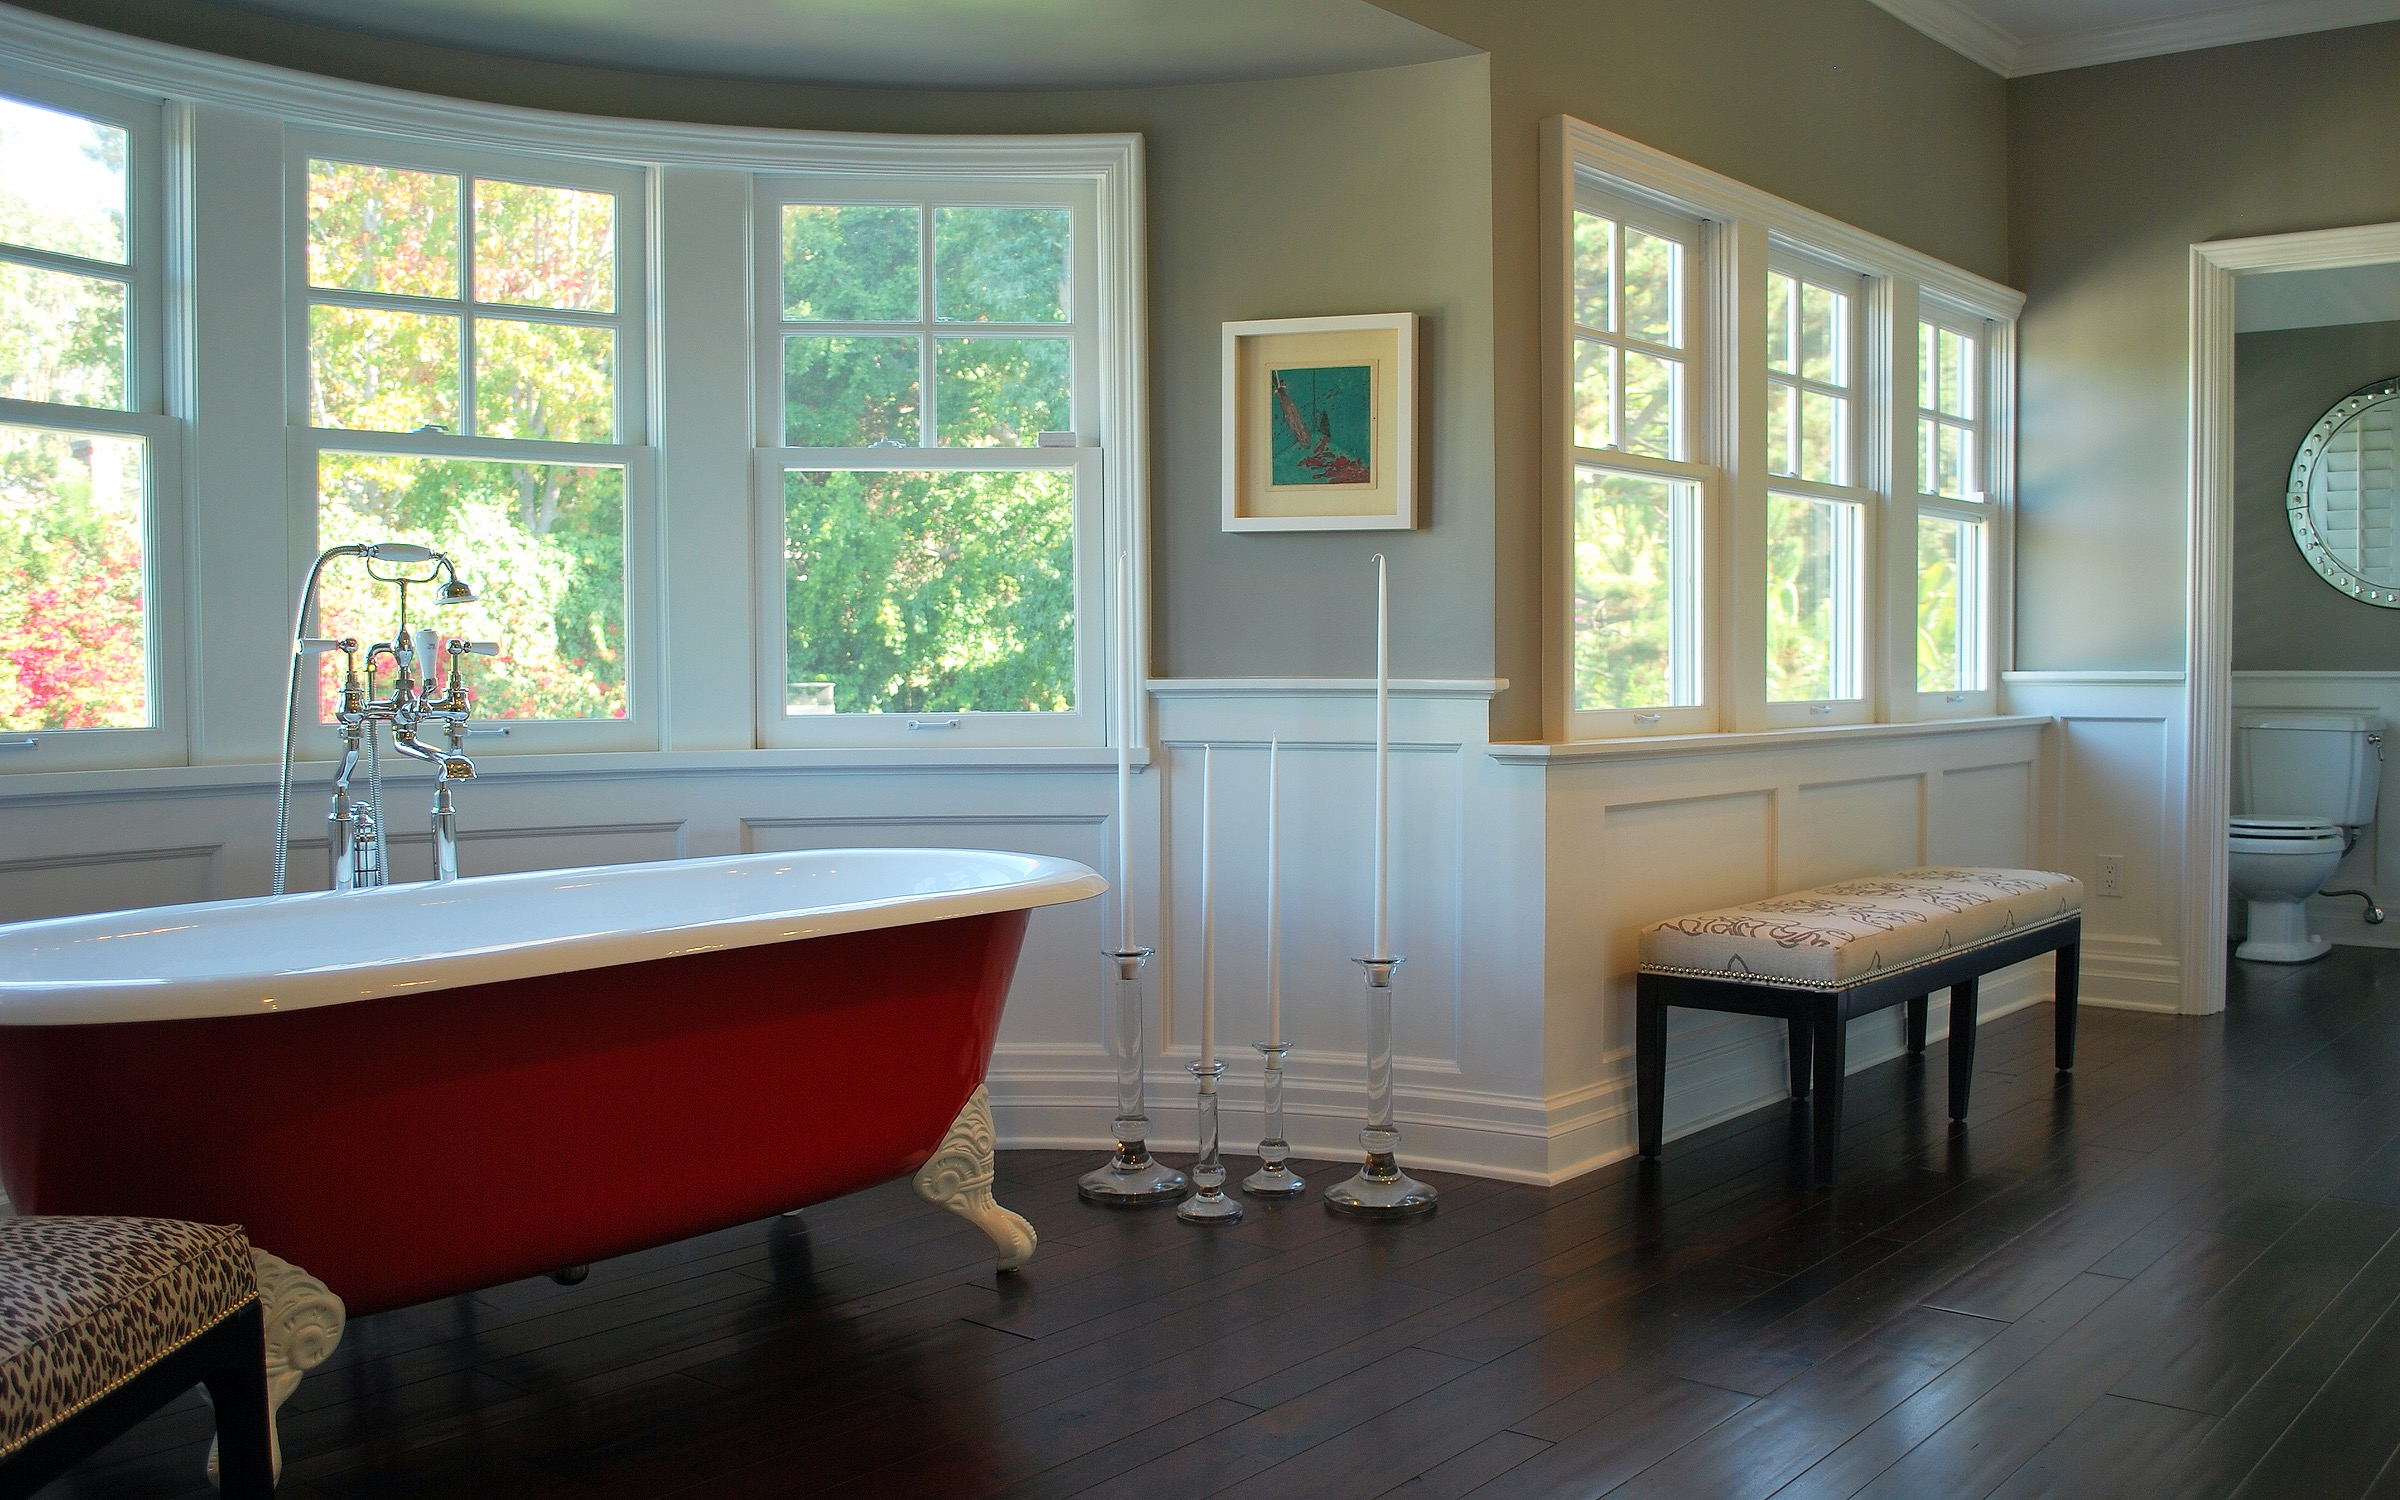 Classic Open Bathroom Interior With Wooden Flooring (Image 11 of 29)